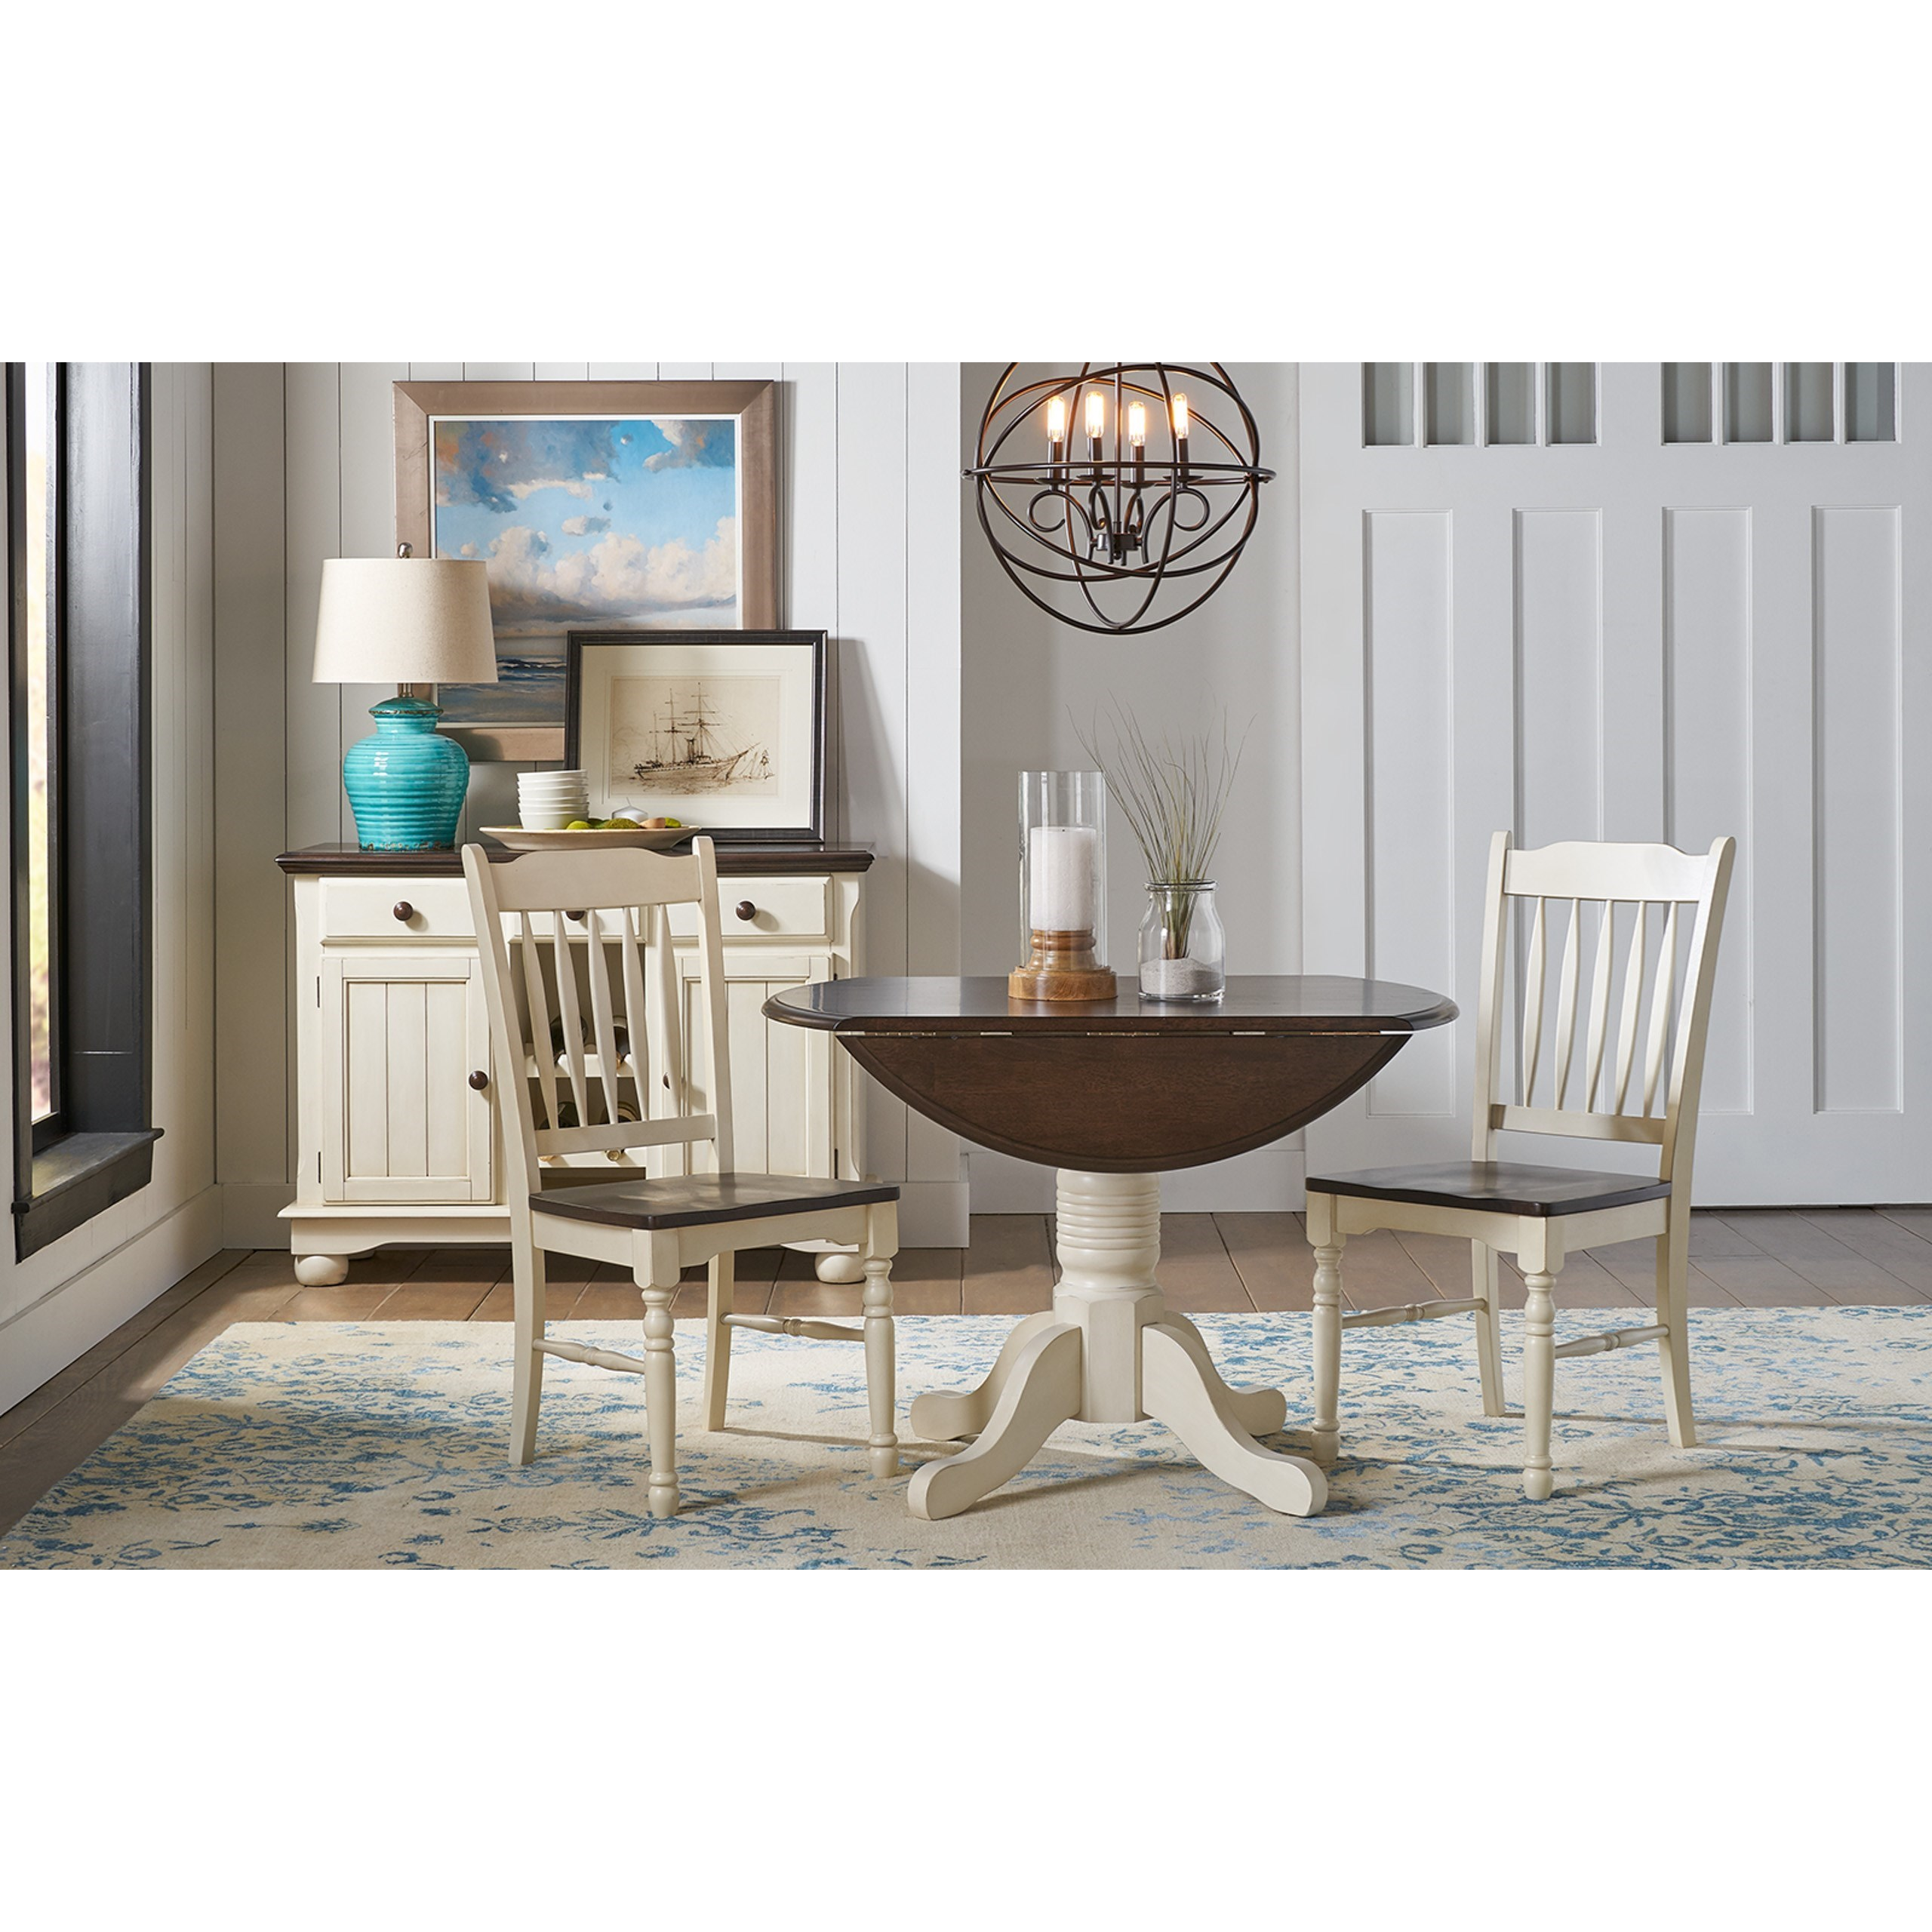 British Isles - CO 3 Piece Dining Set by A-A at Walker's Furniture